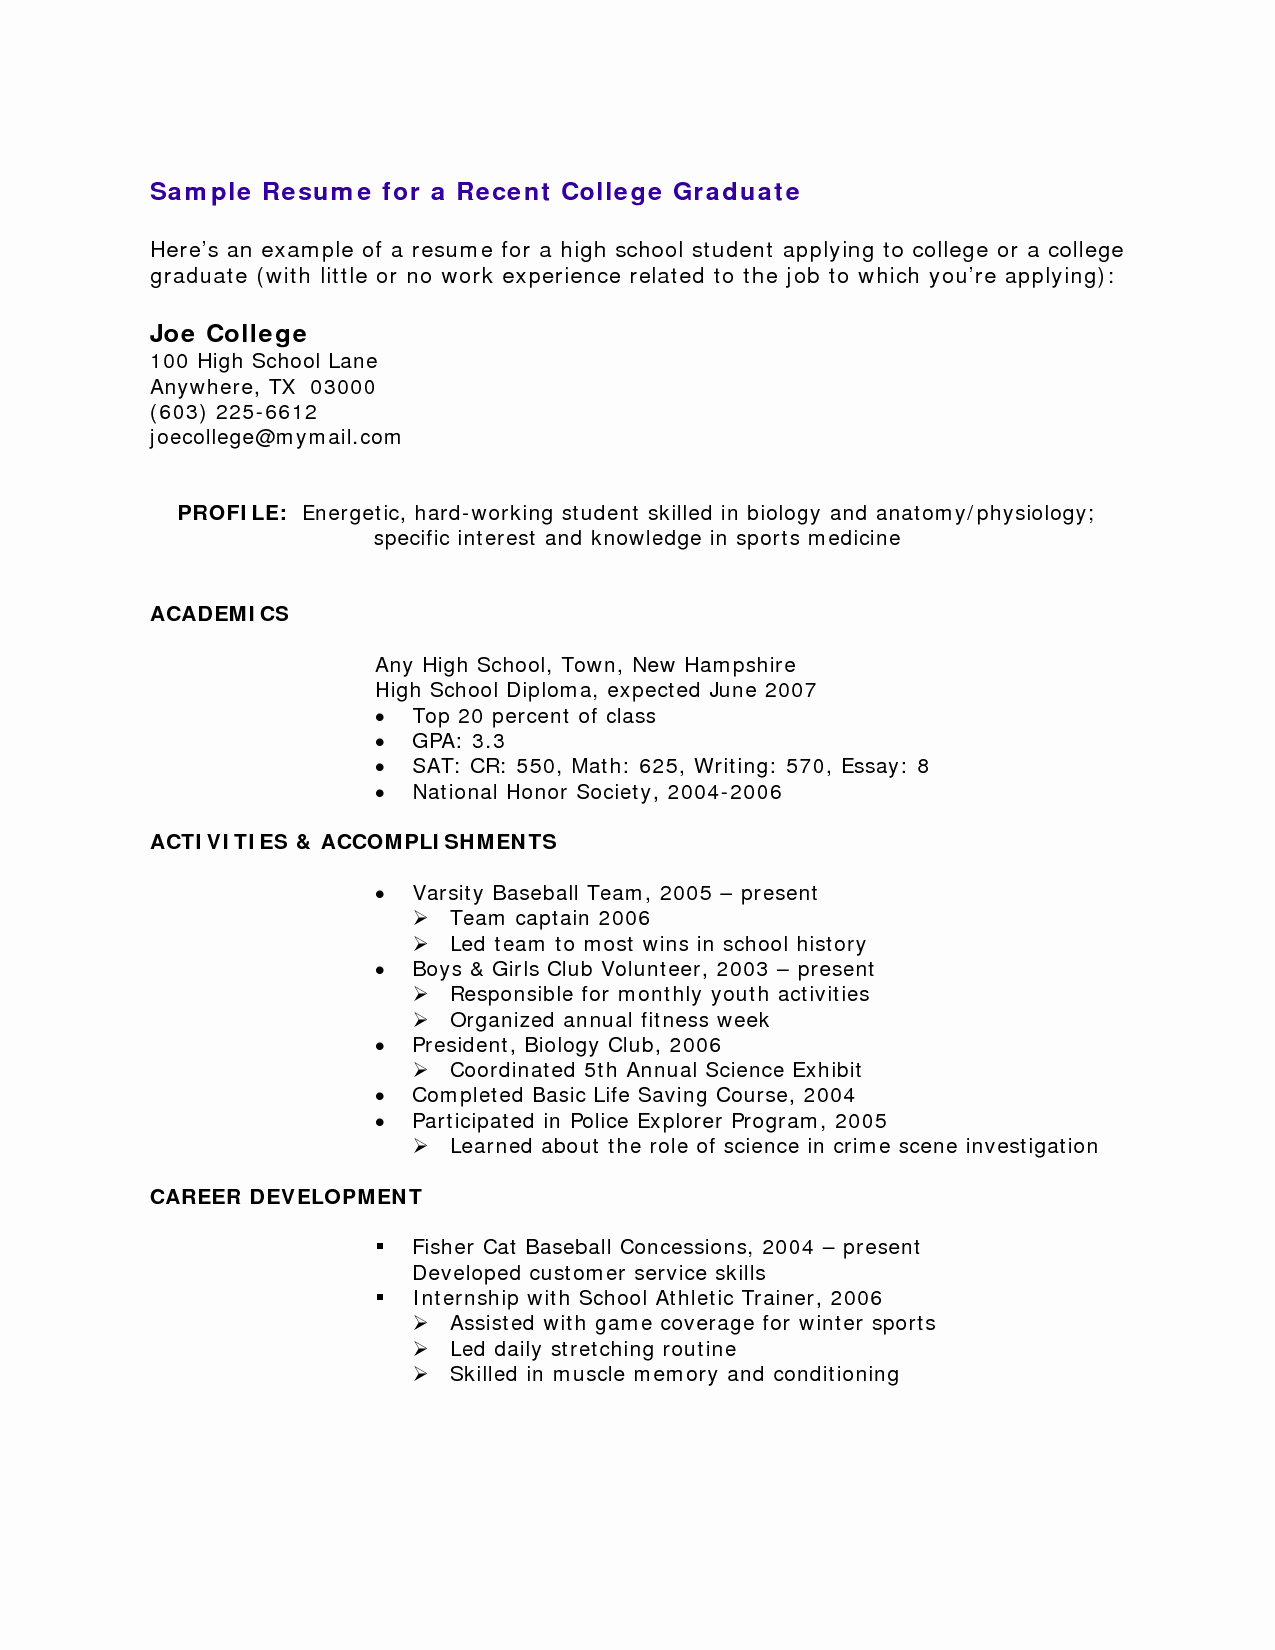 High School Job Resume Awesome Resumes Templates for Students with No Experience